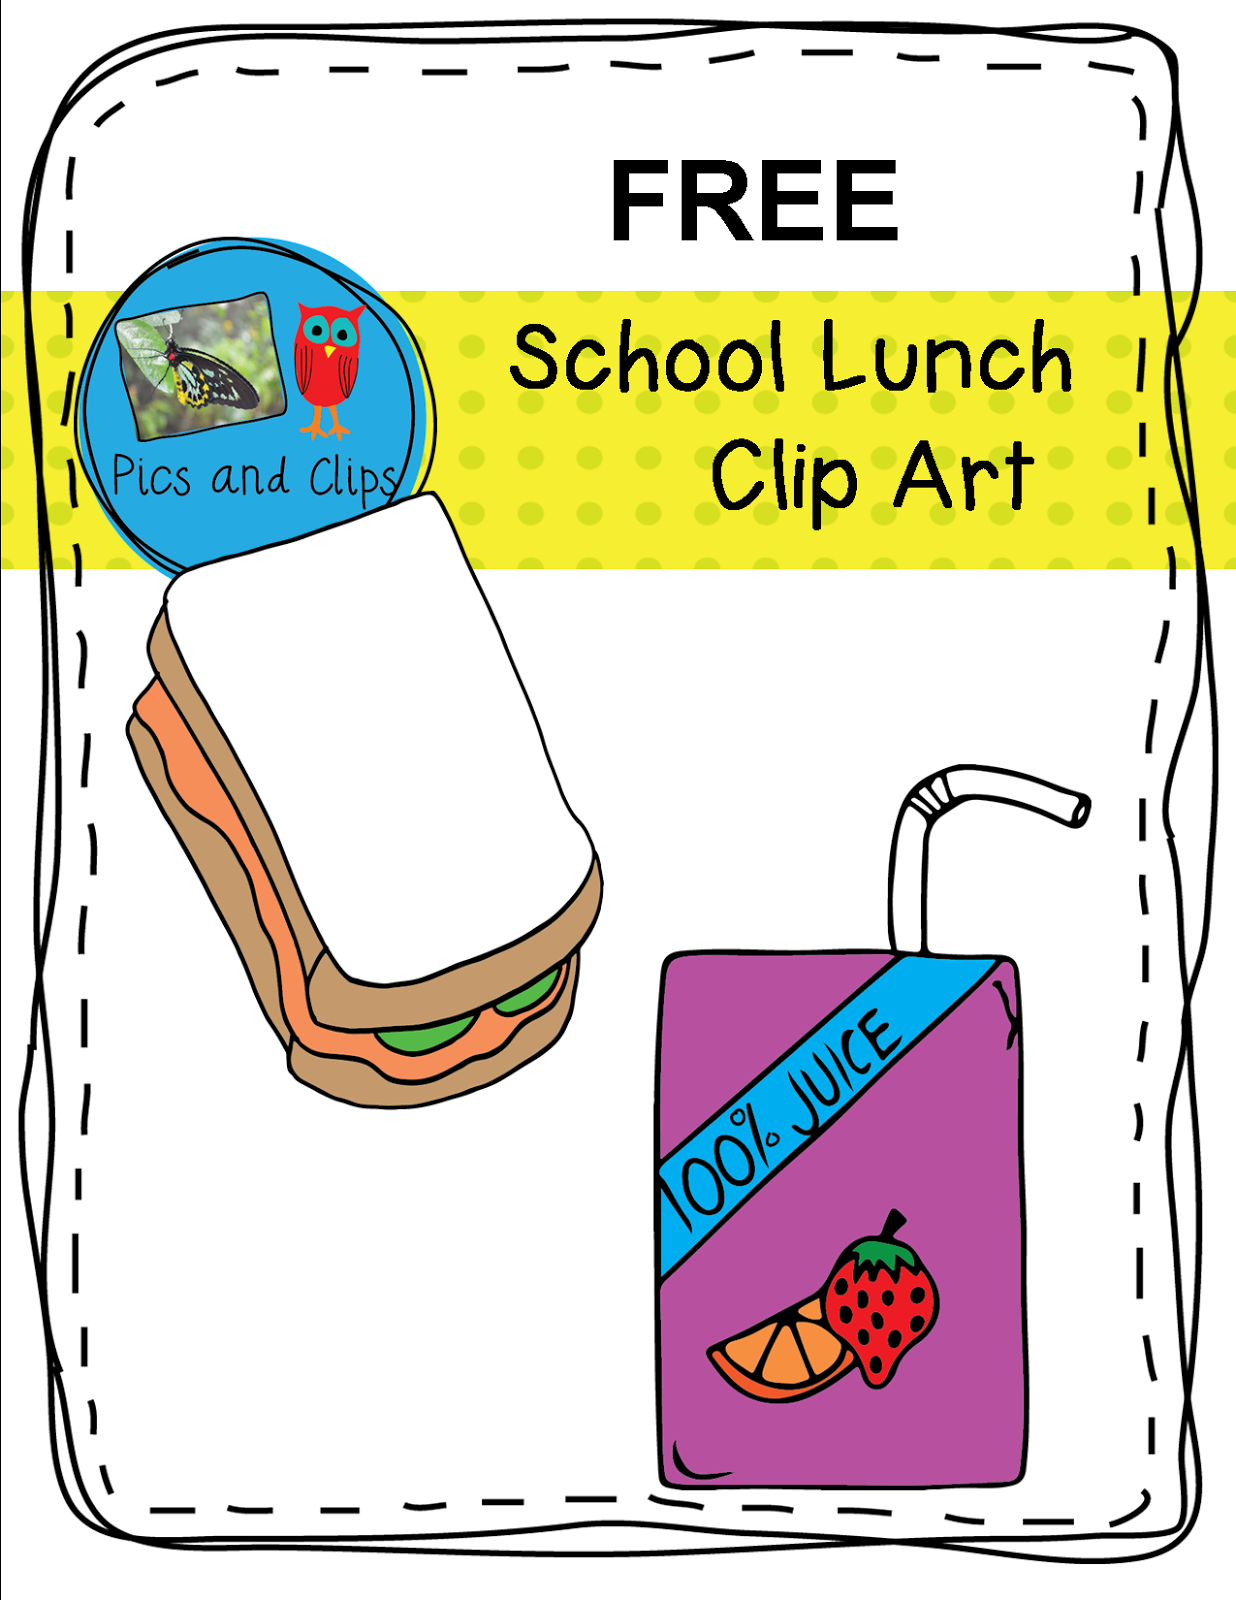 Cafeteria clipart lunch menu School Art Lunch School Math